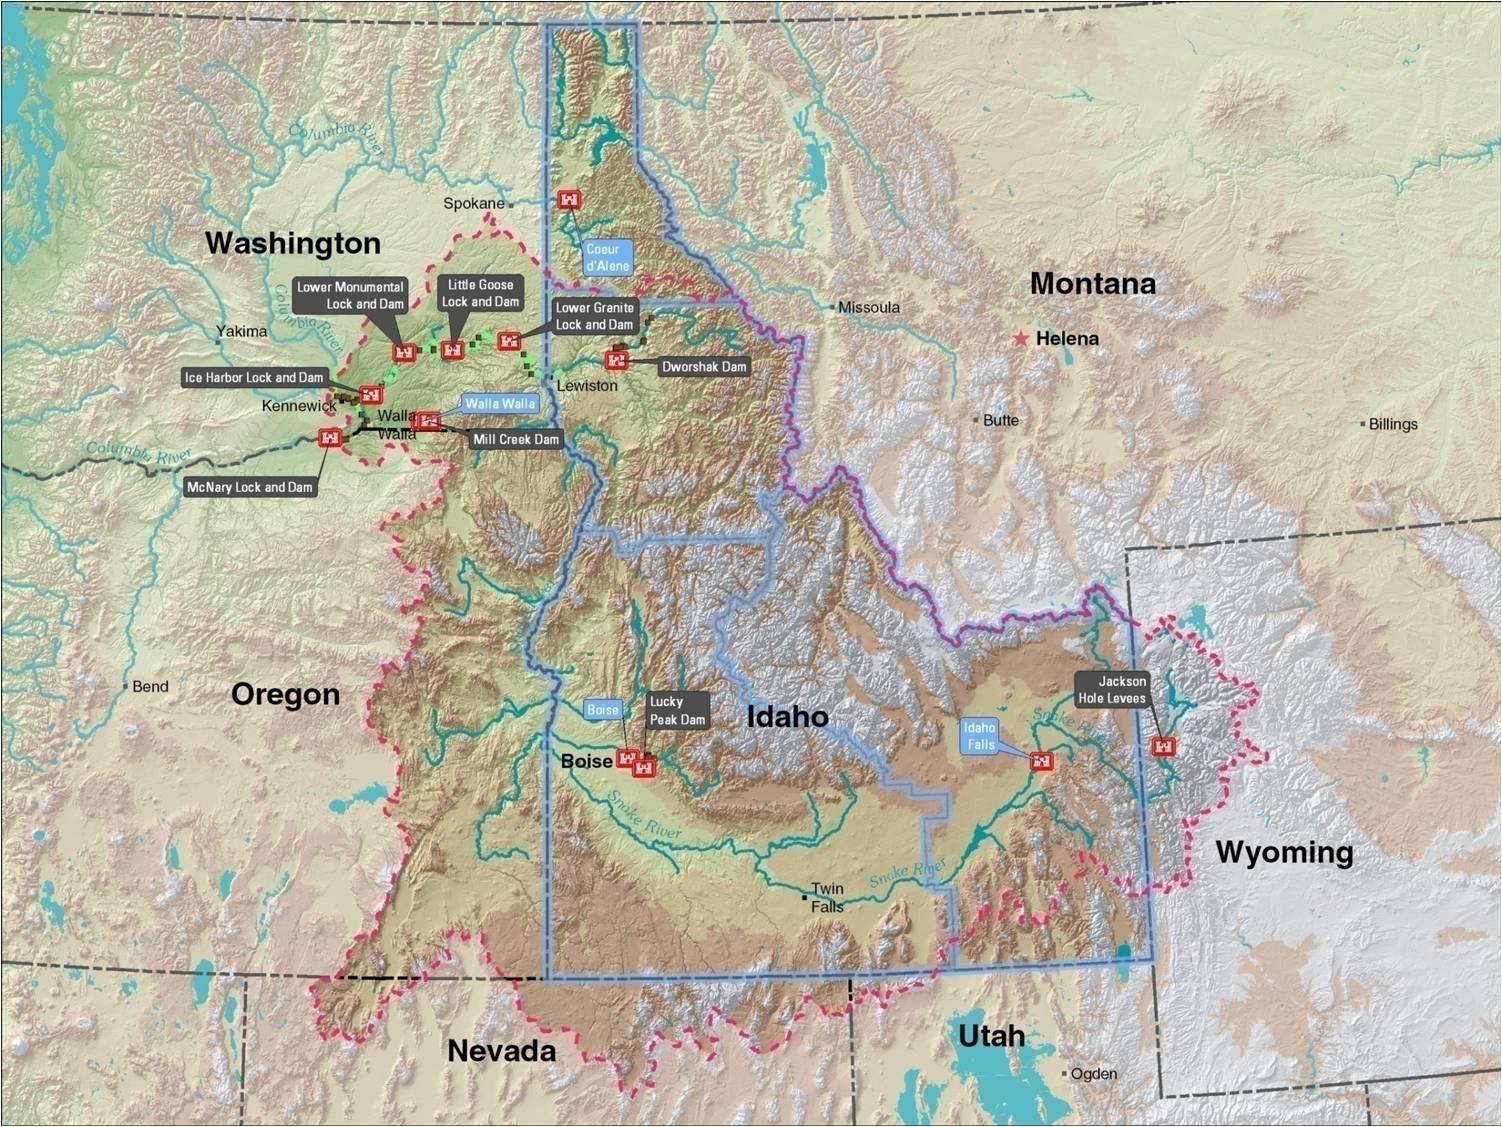 Walla Walla District Locations